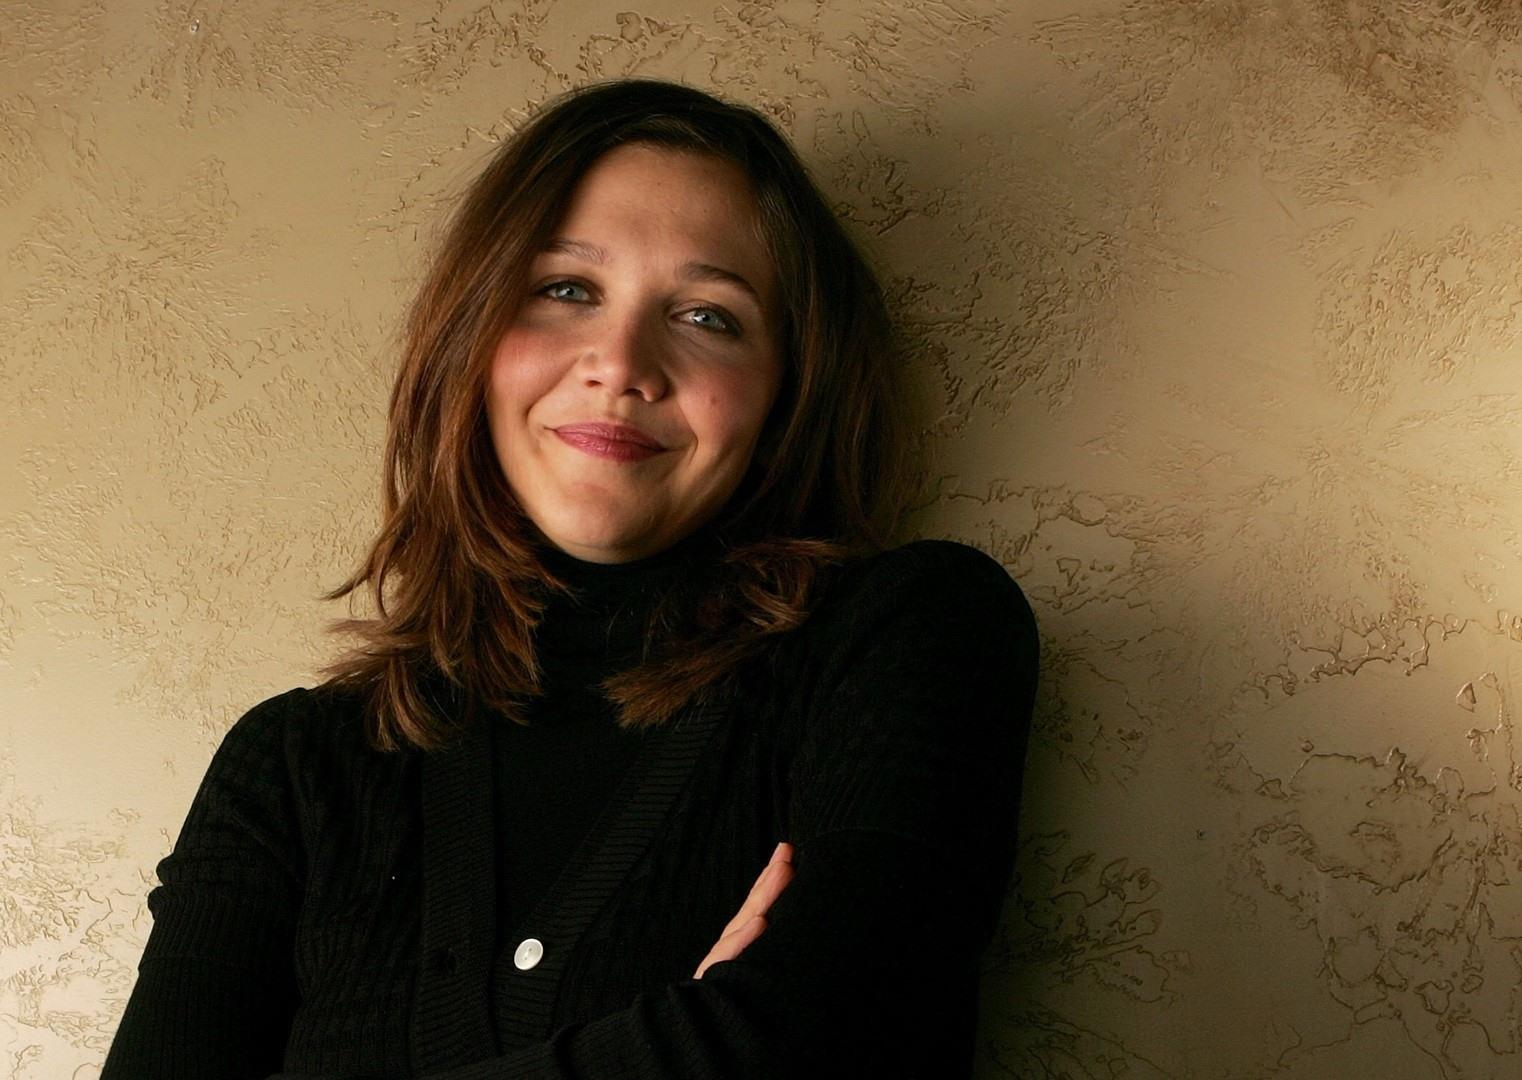 1977 Jüdin Maggie Gyllenhaal. Amerikanische Schauspielerin. Filmauswahl: World Trade Center (Oliver Stone), The Dark Knight (Batman), Crazy Heart, Eine zauberhafte Nanny und White House Down.